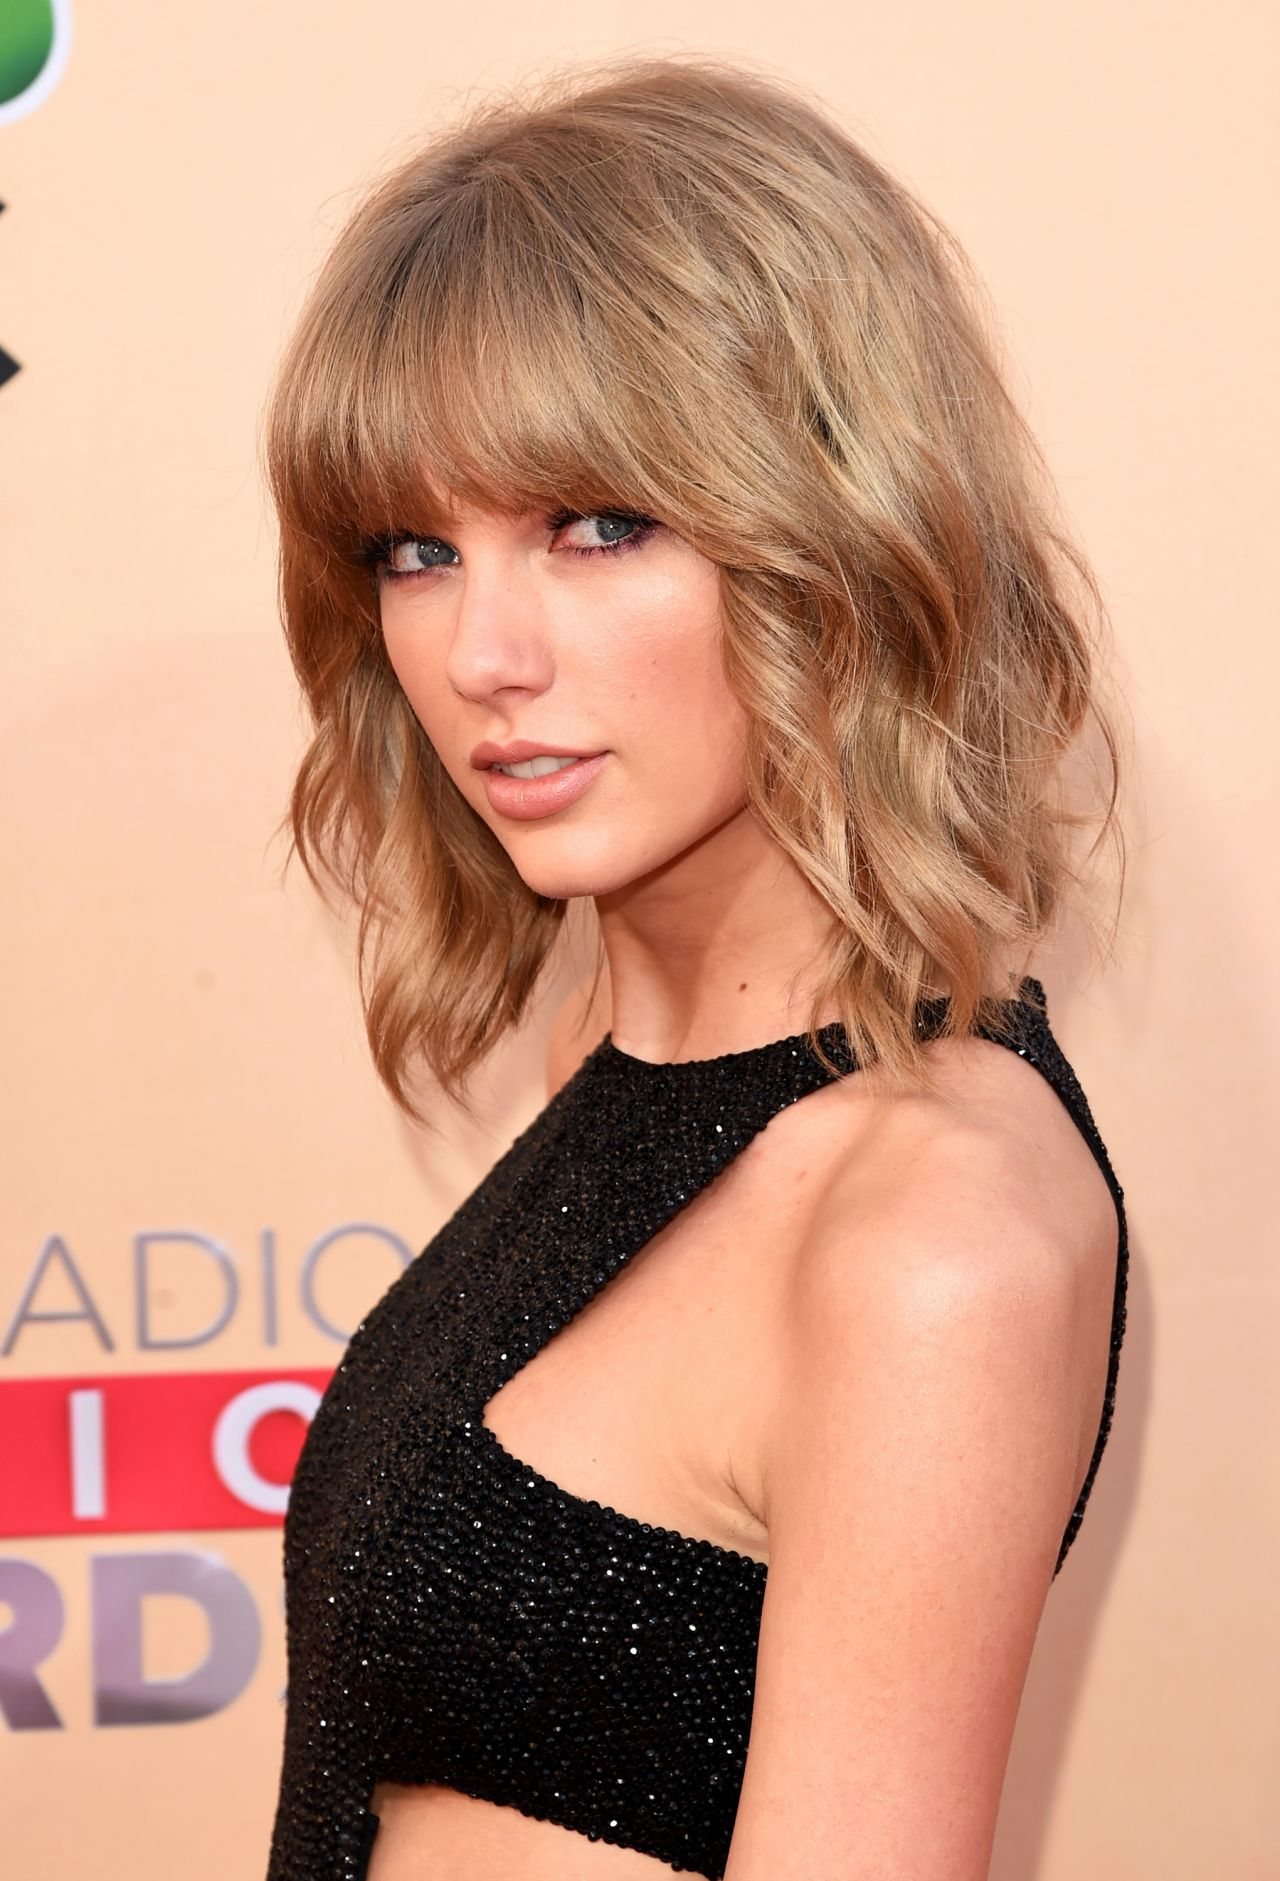 Taylor Swift – 2015 iHeartRadio Music Awards in Los Angeles Taylor Swift